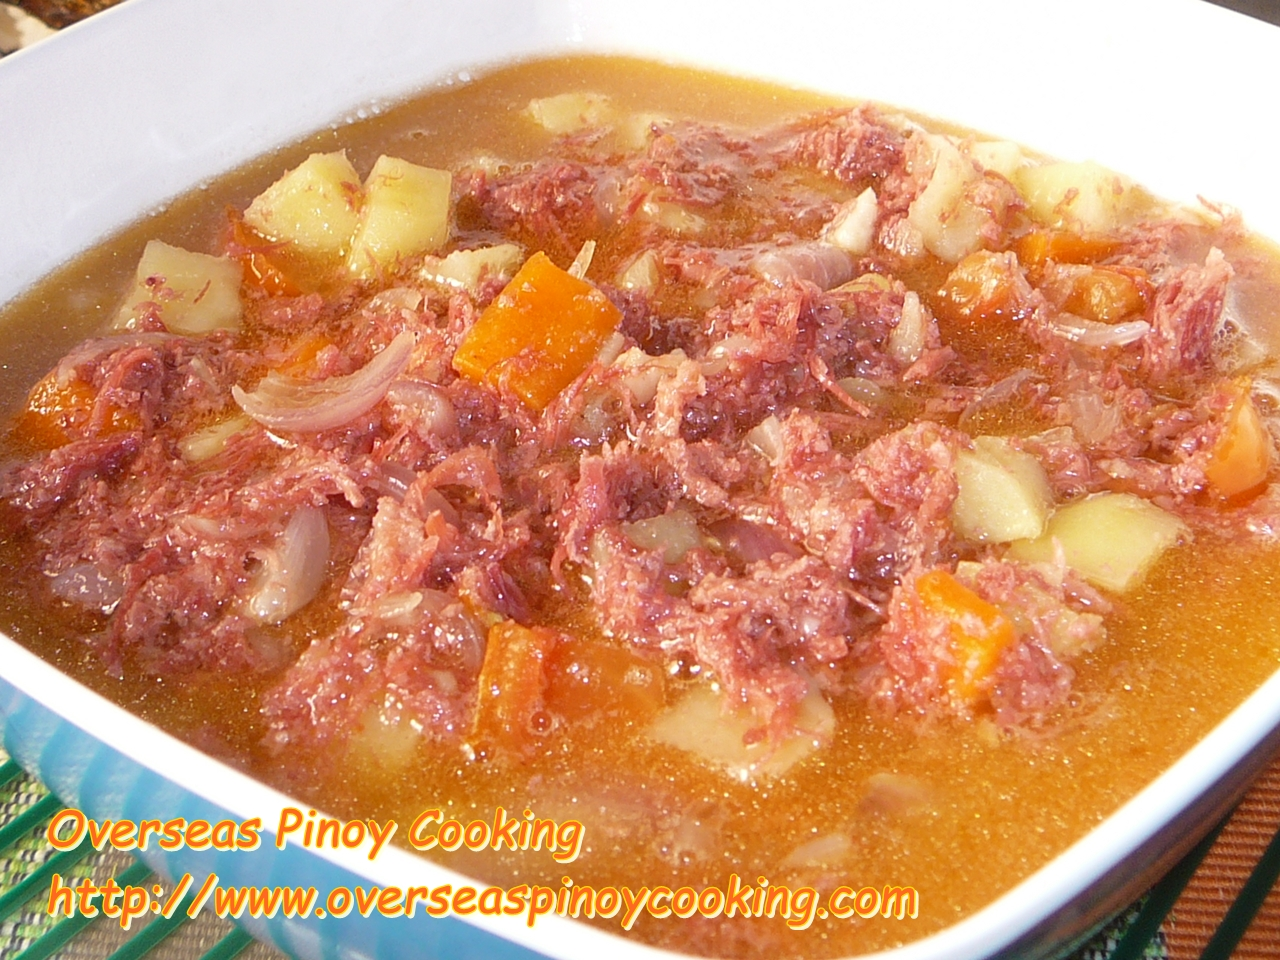 Ginisang Corned Beef Soupy Version